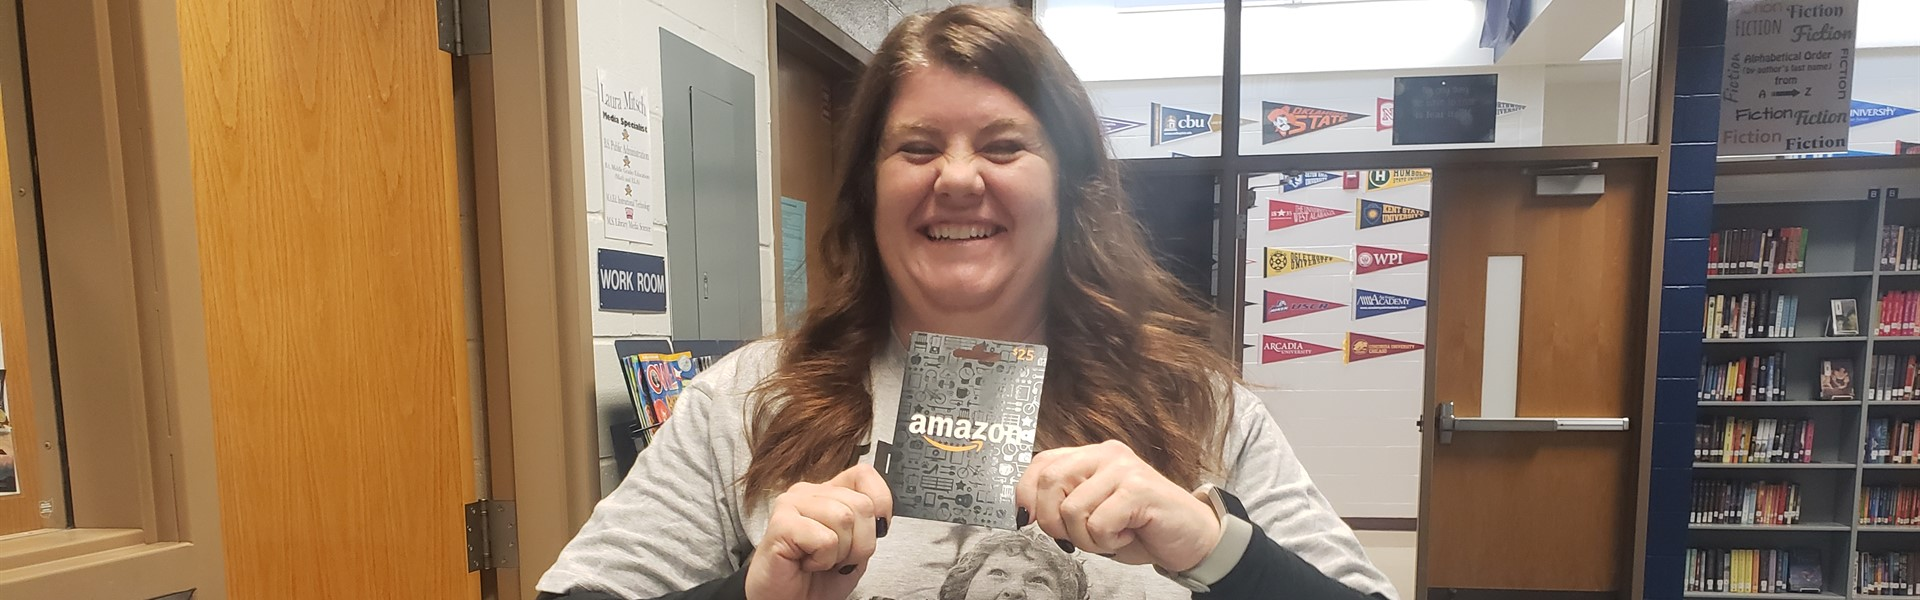 Ms. Ives Book Bingo Teacher Winner